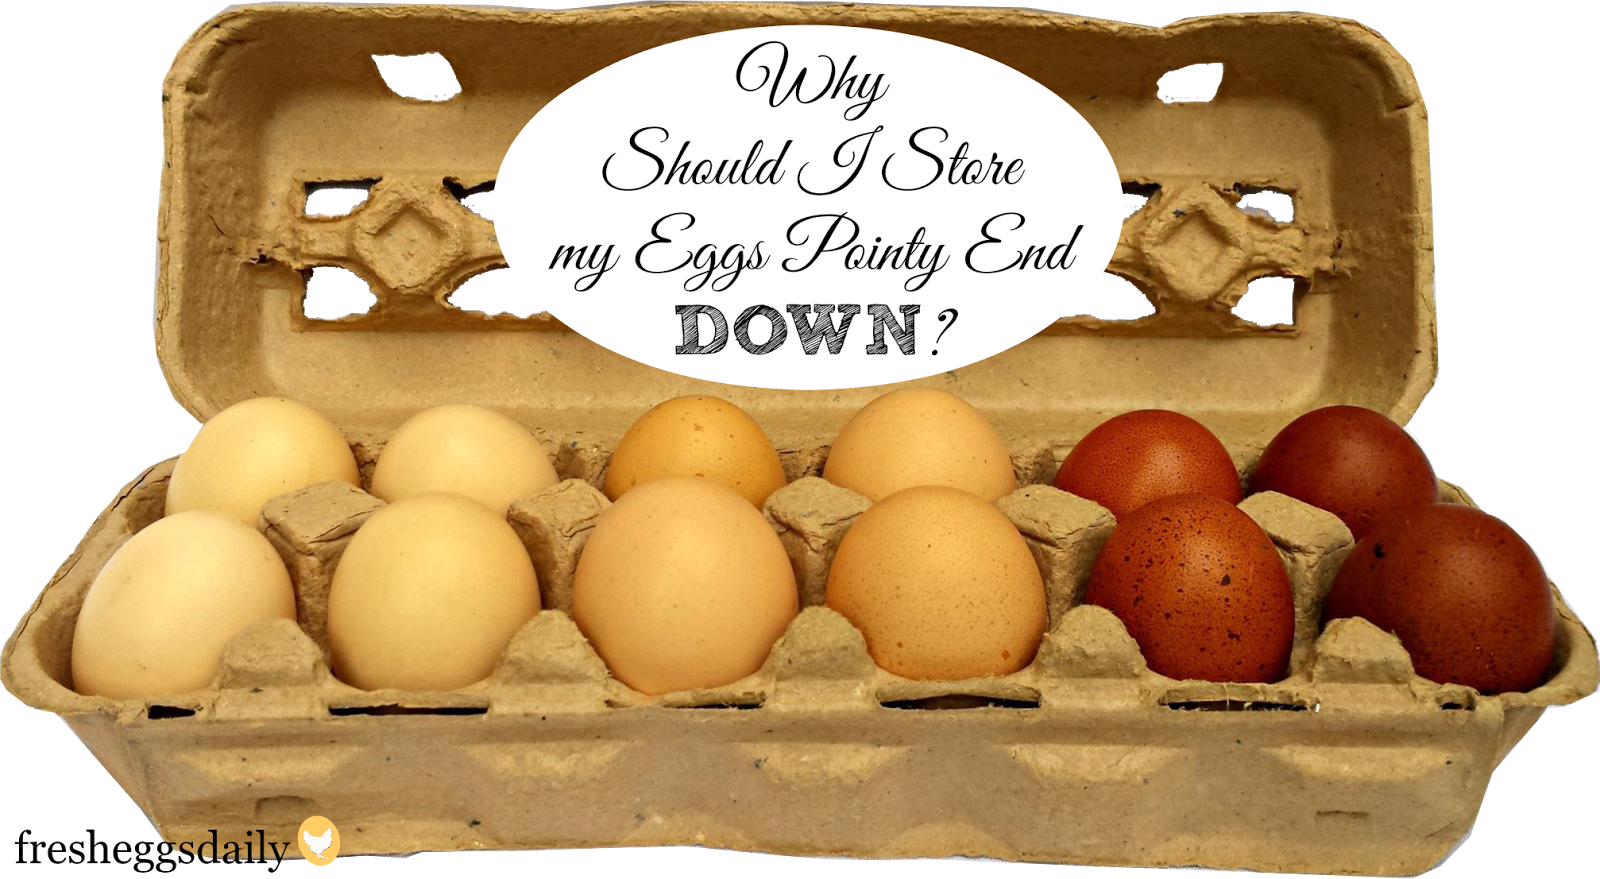 Why Should Eggs Be Stored Pointy End Down?